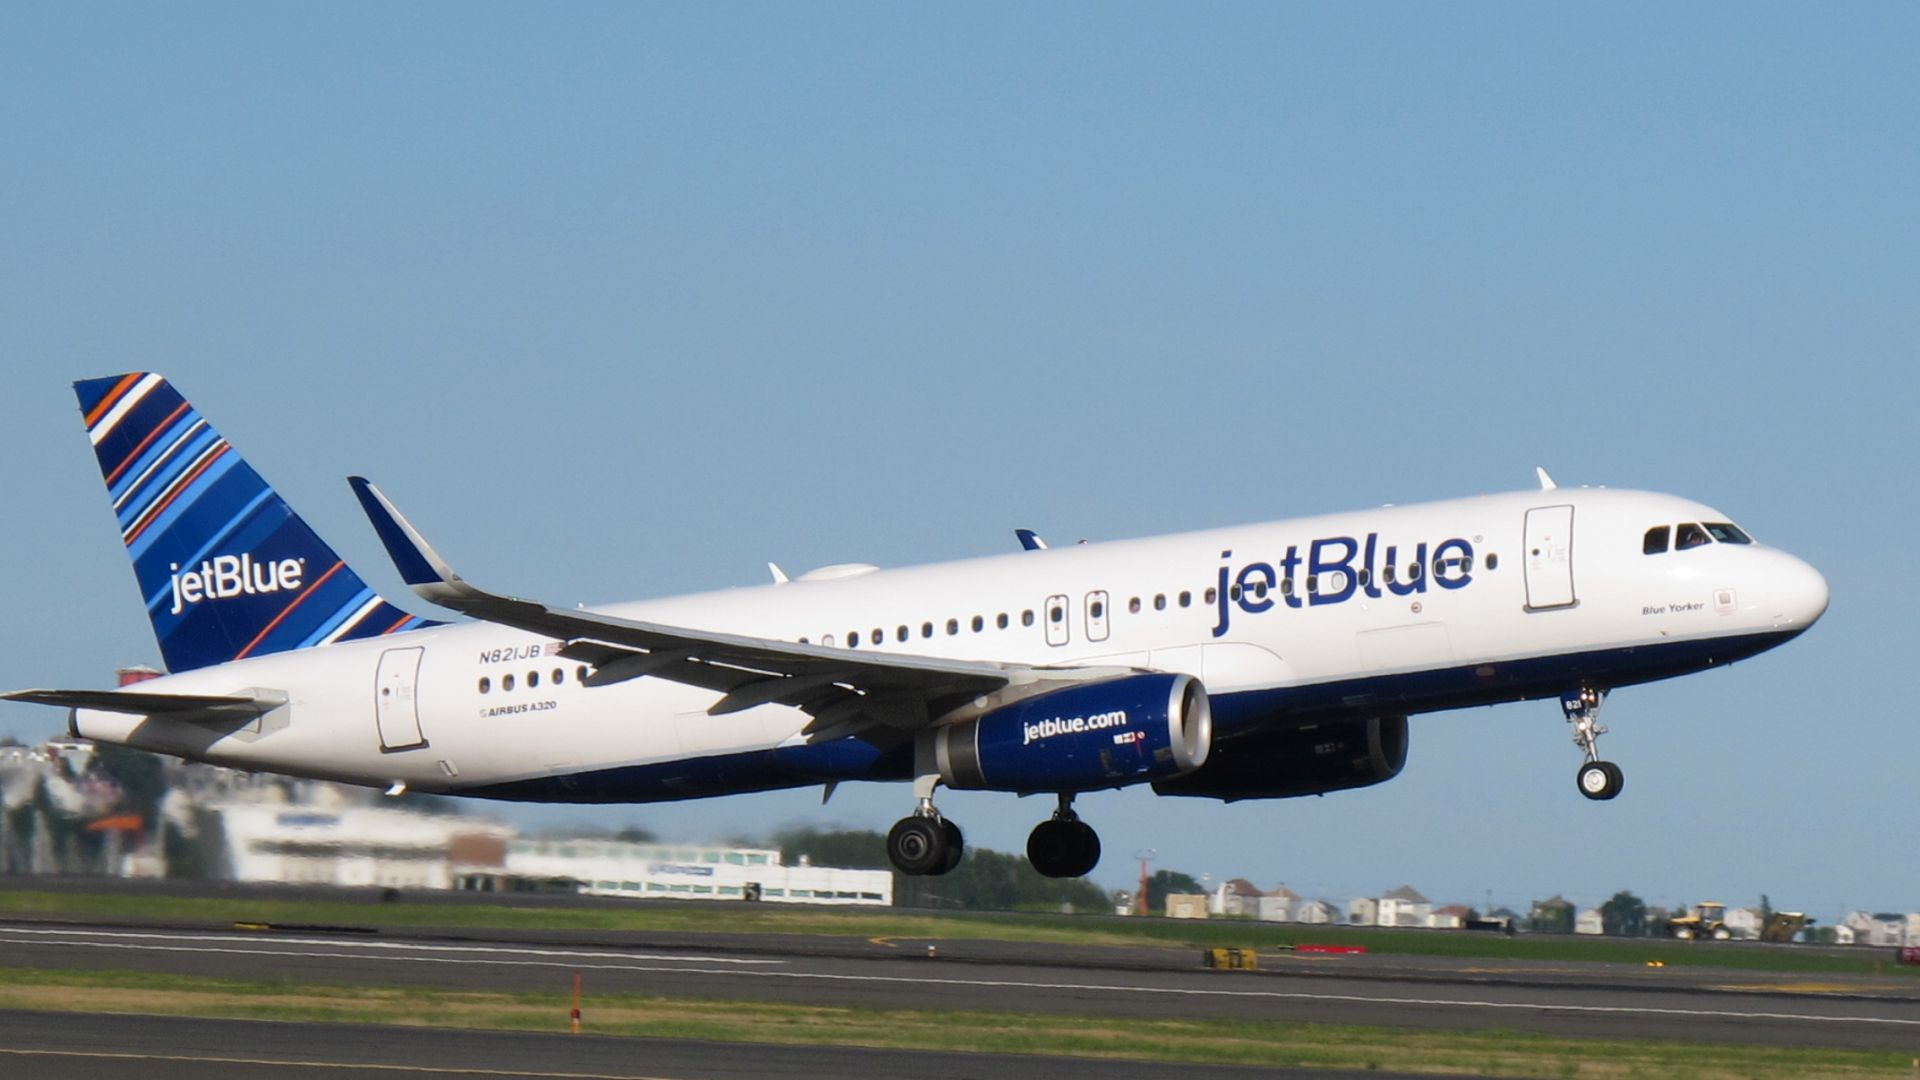 Maintenance concept 'Maintwise' for JetBlue